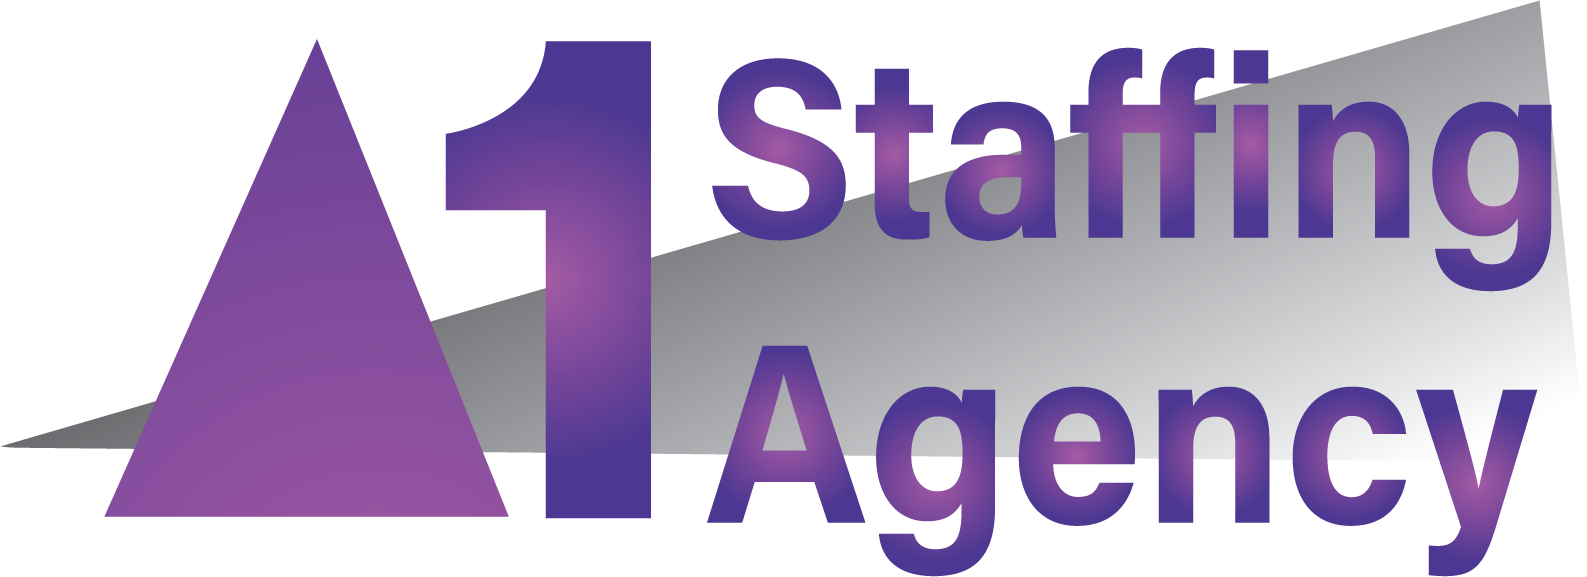 A1 Staffing Agency logo.